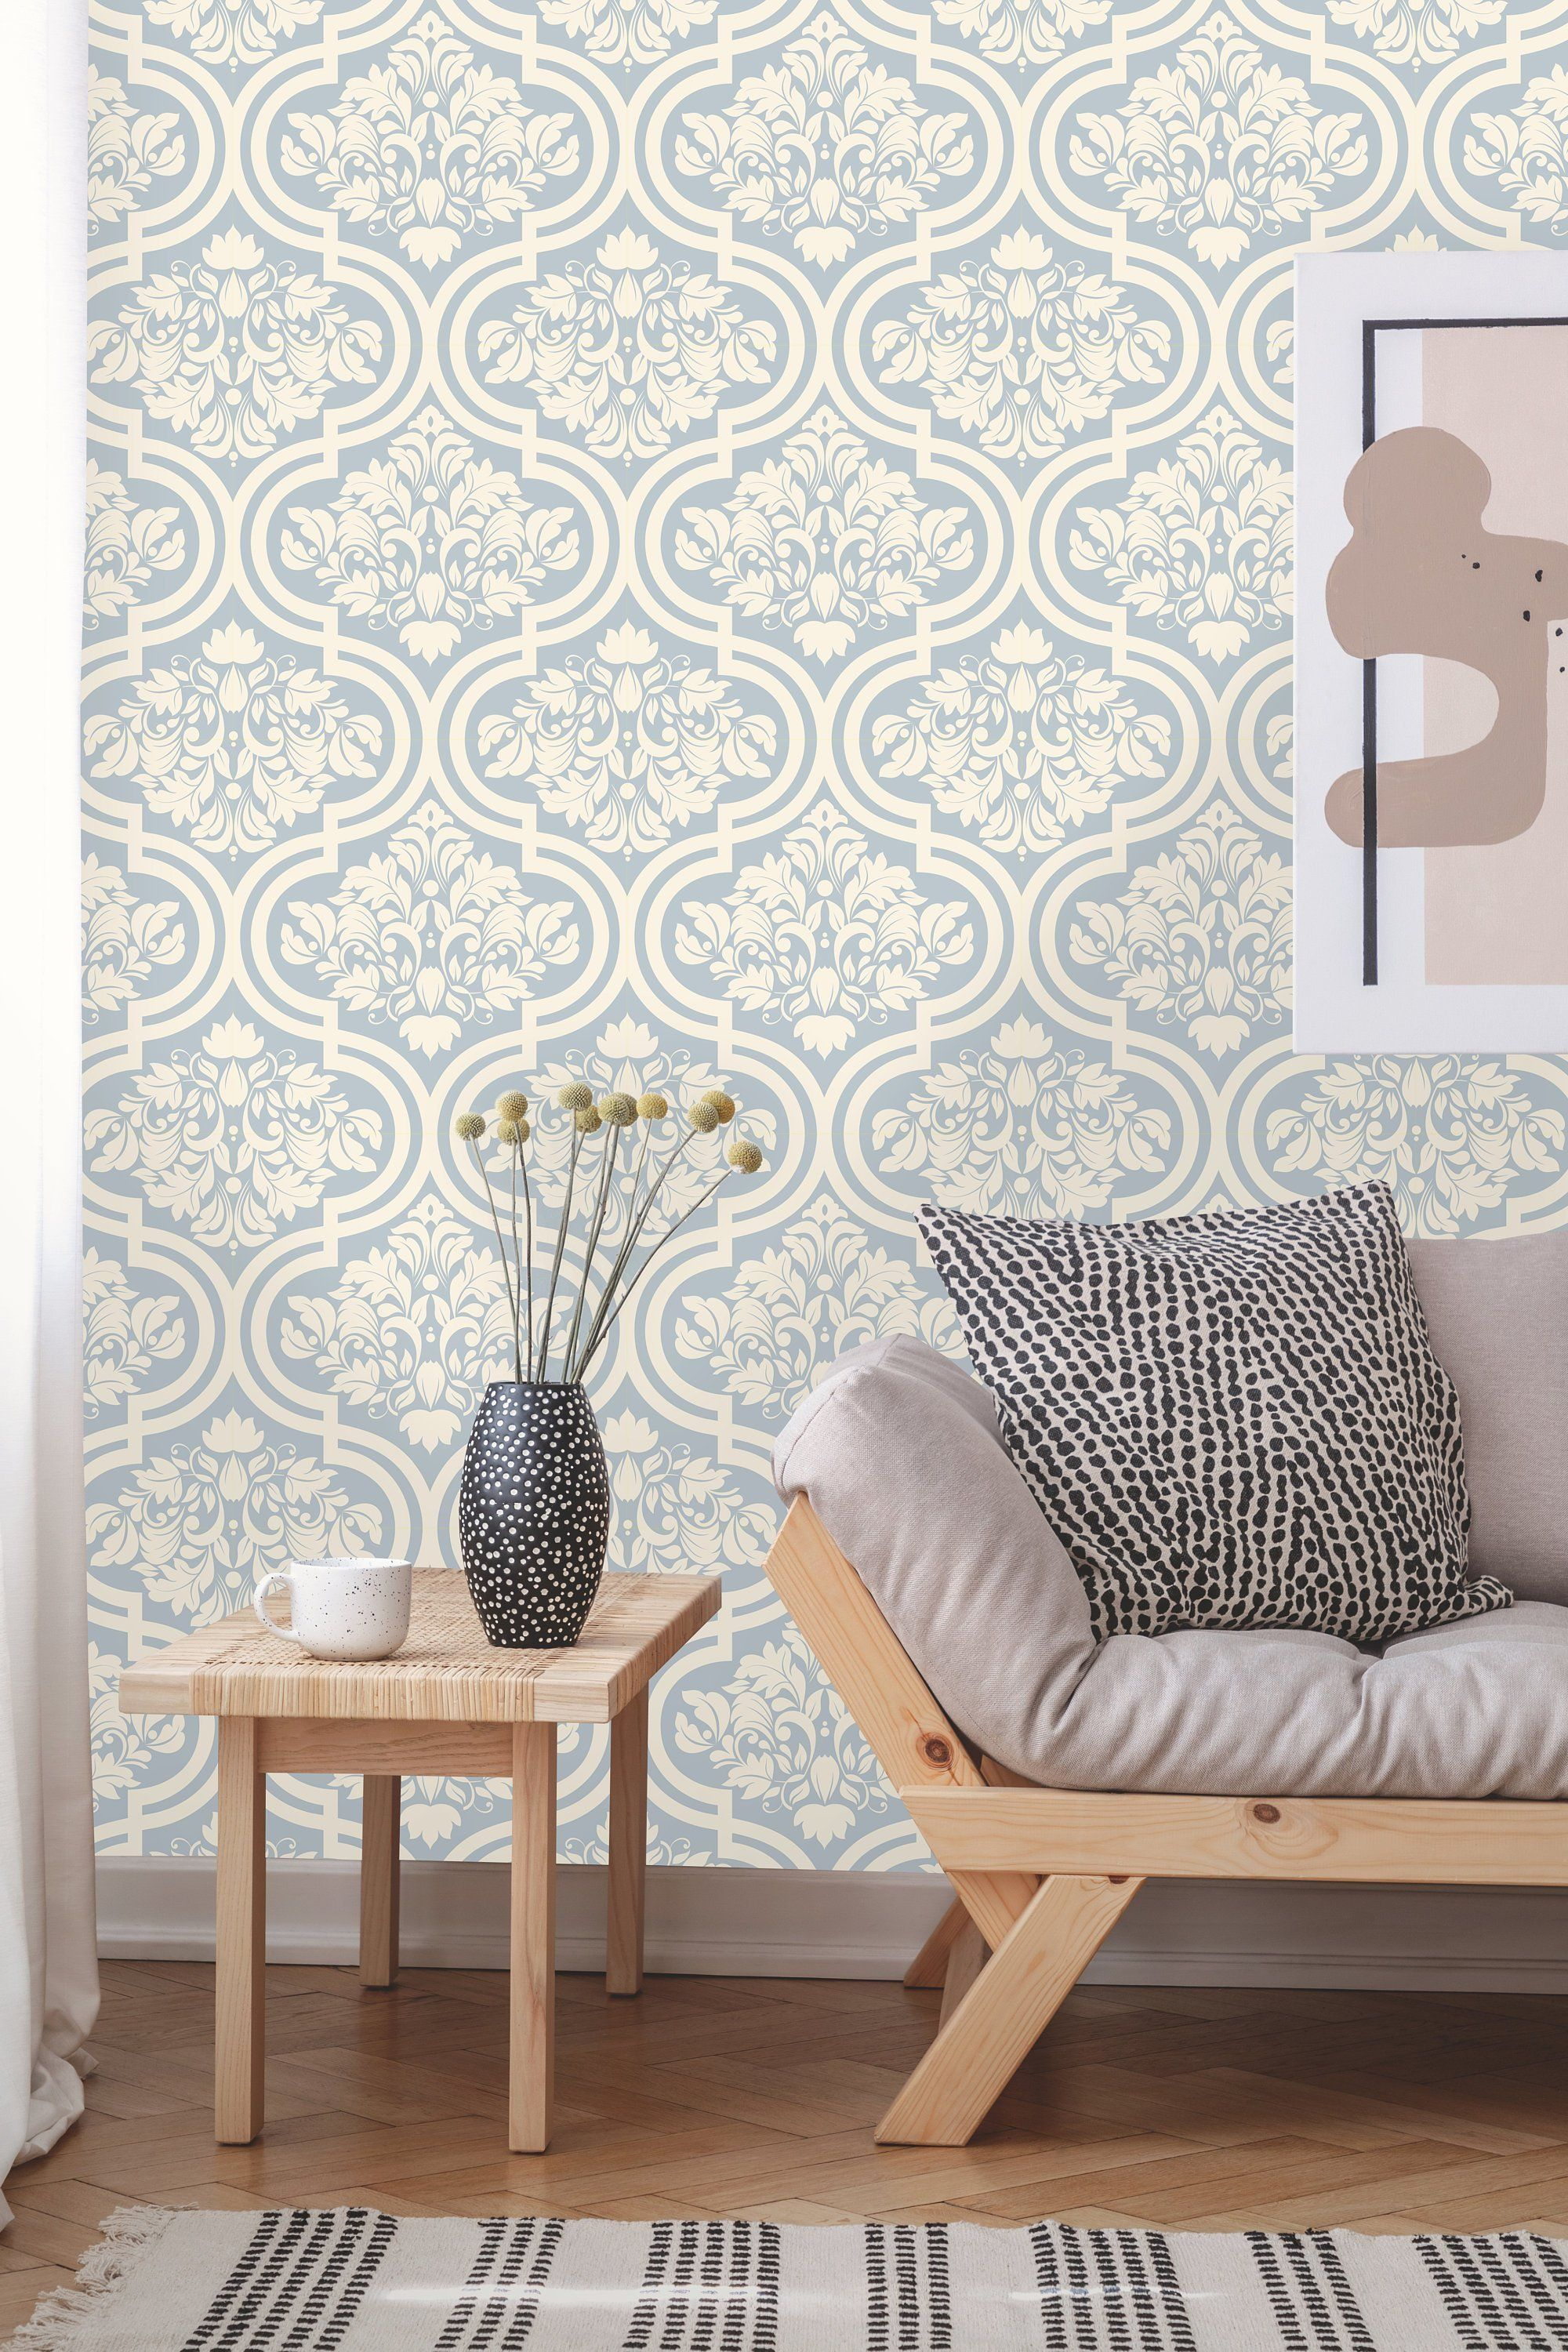 Removable Wallpaper Victorian Style Peel And Stick Geometric Etsy Removable Wallpaper Wallpaper Textured Walls